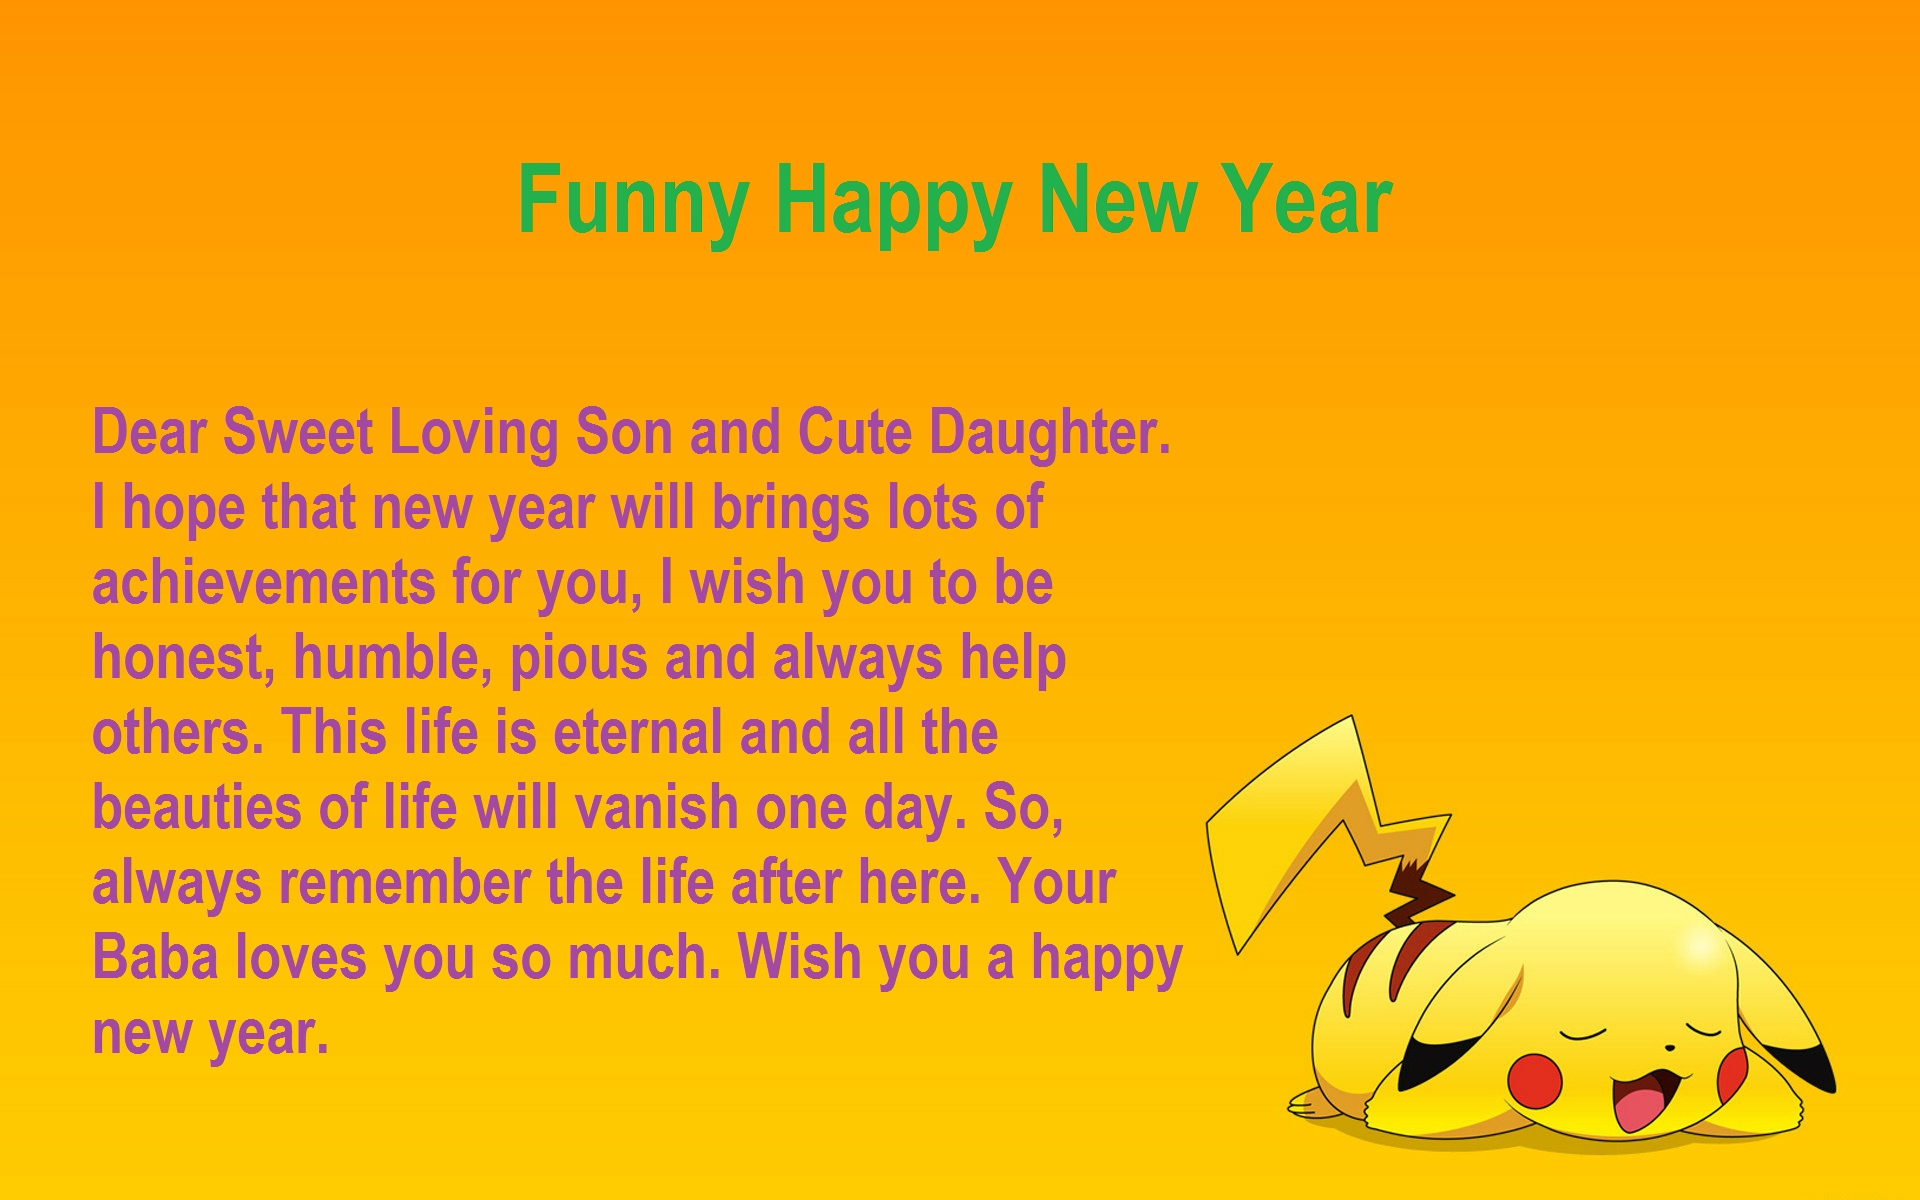 helen keller pikachu pokemon cartoon new year quotes wishes and